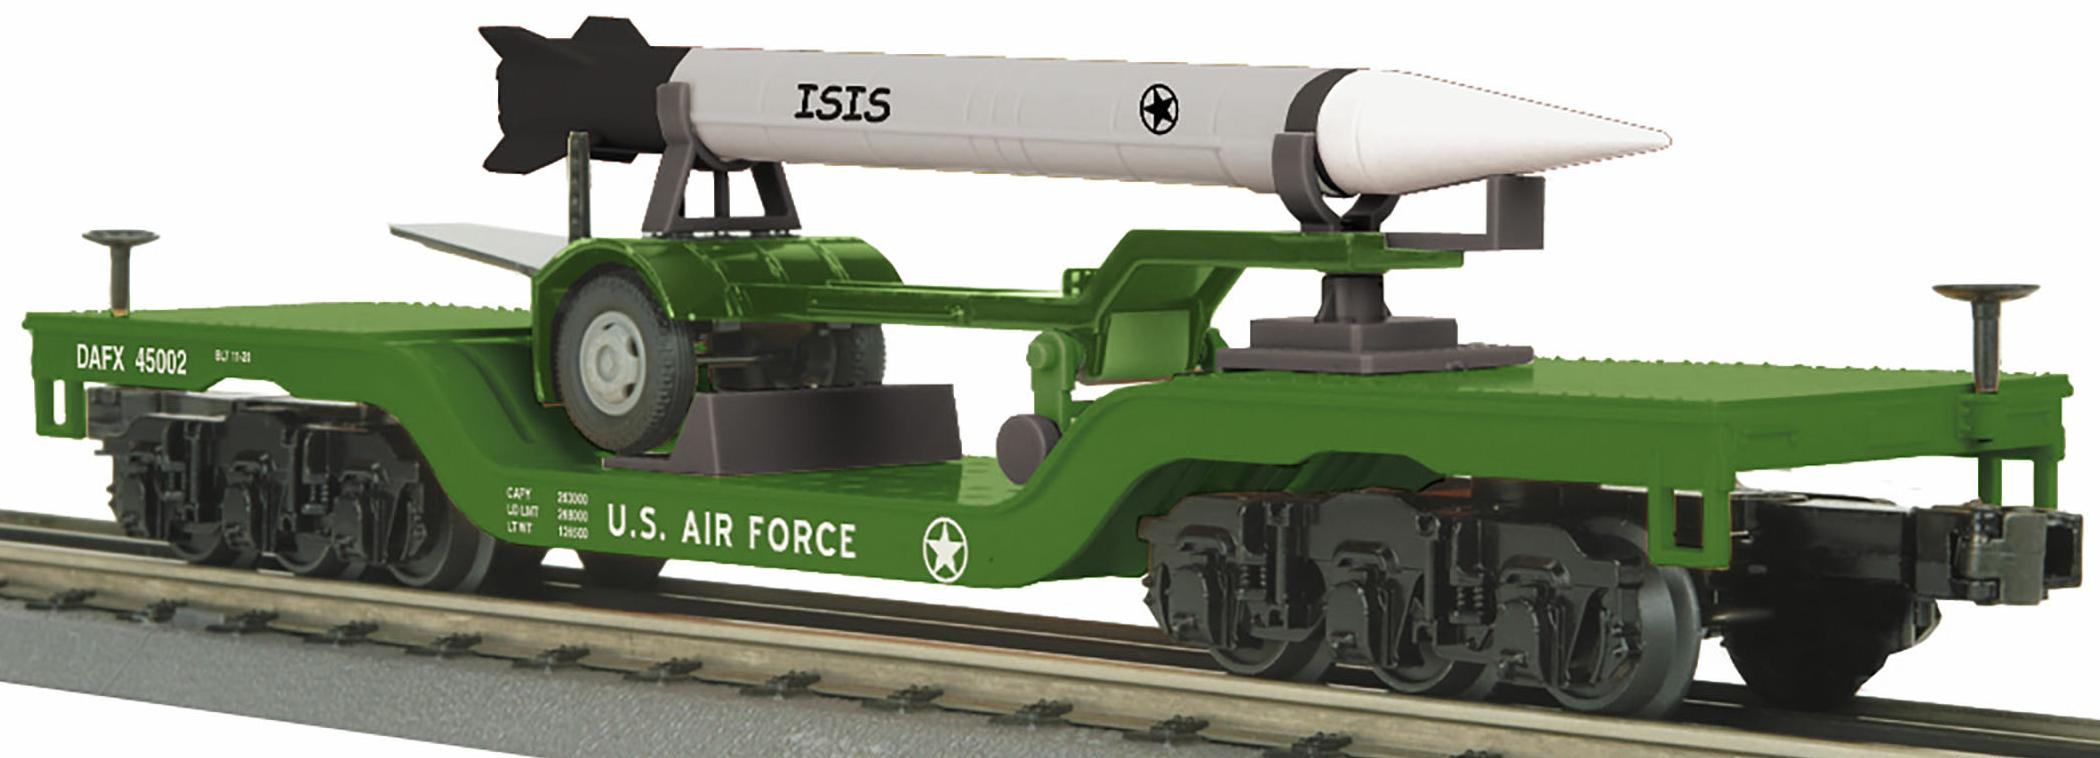 Dep. Center Flat Car w/Rocket Load - U.S. Air Force (ISIS) image